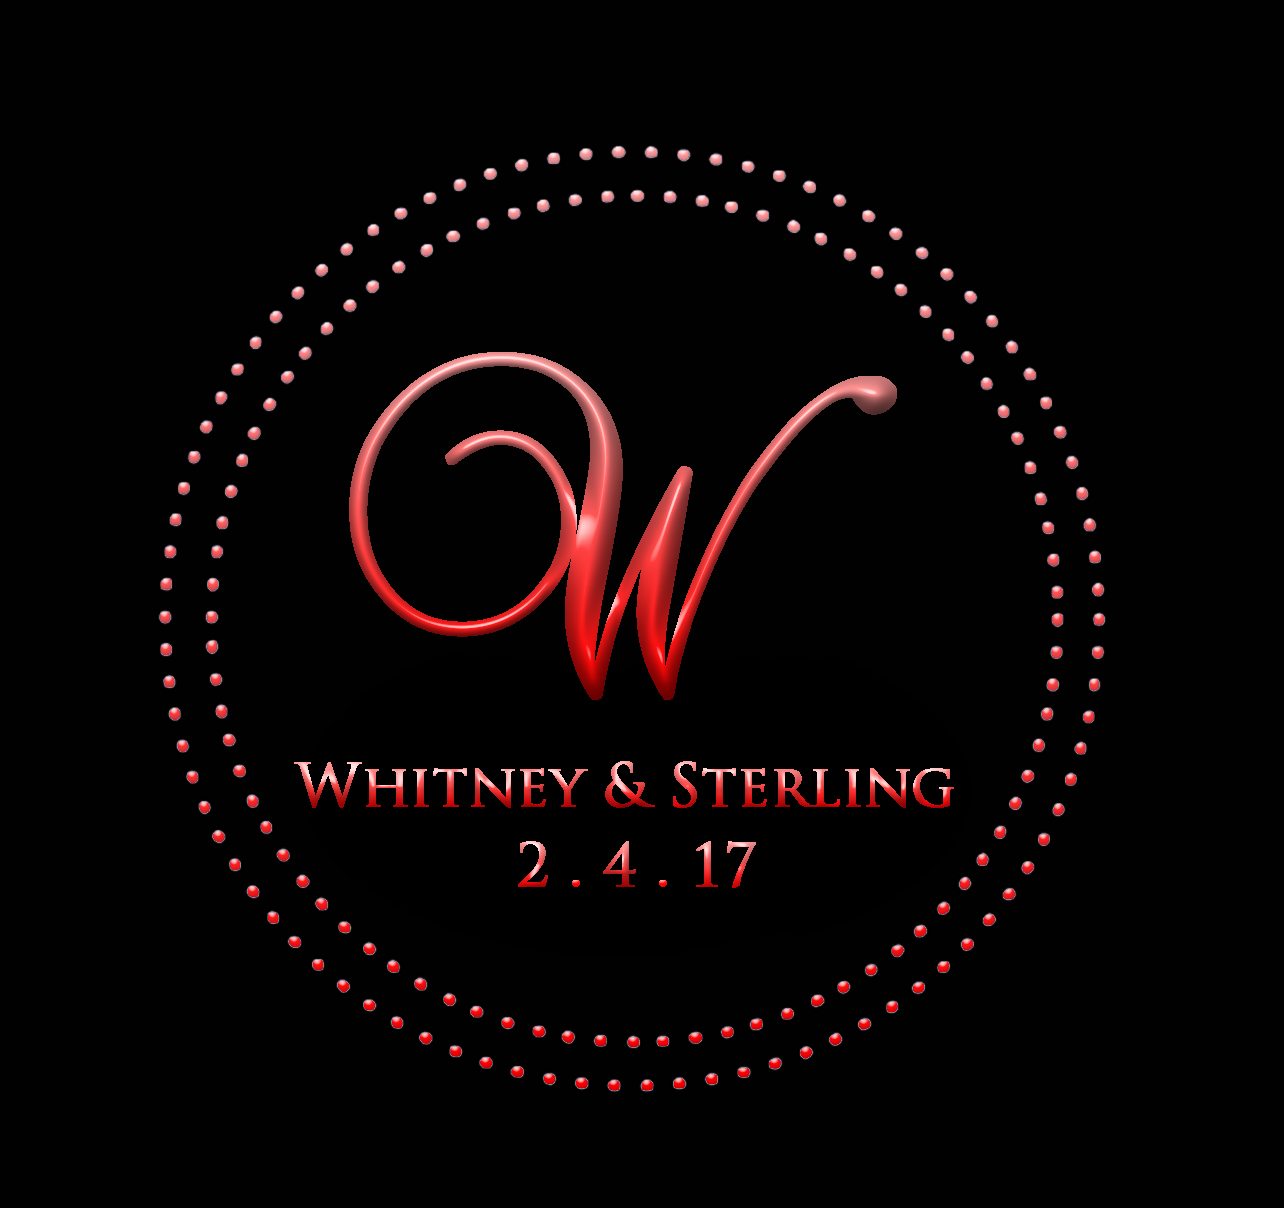 WHITNEYandSTERLING1monogram.jpg